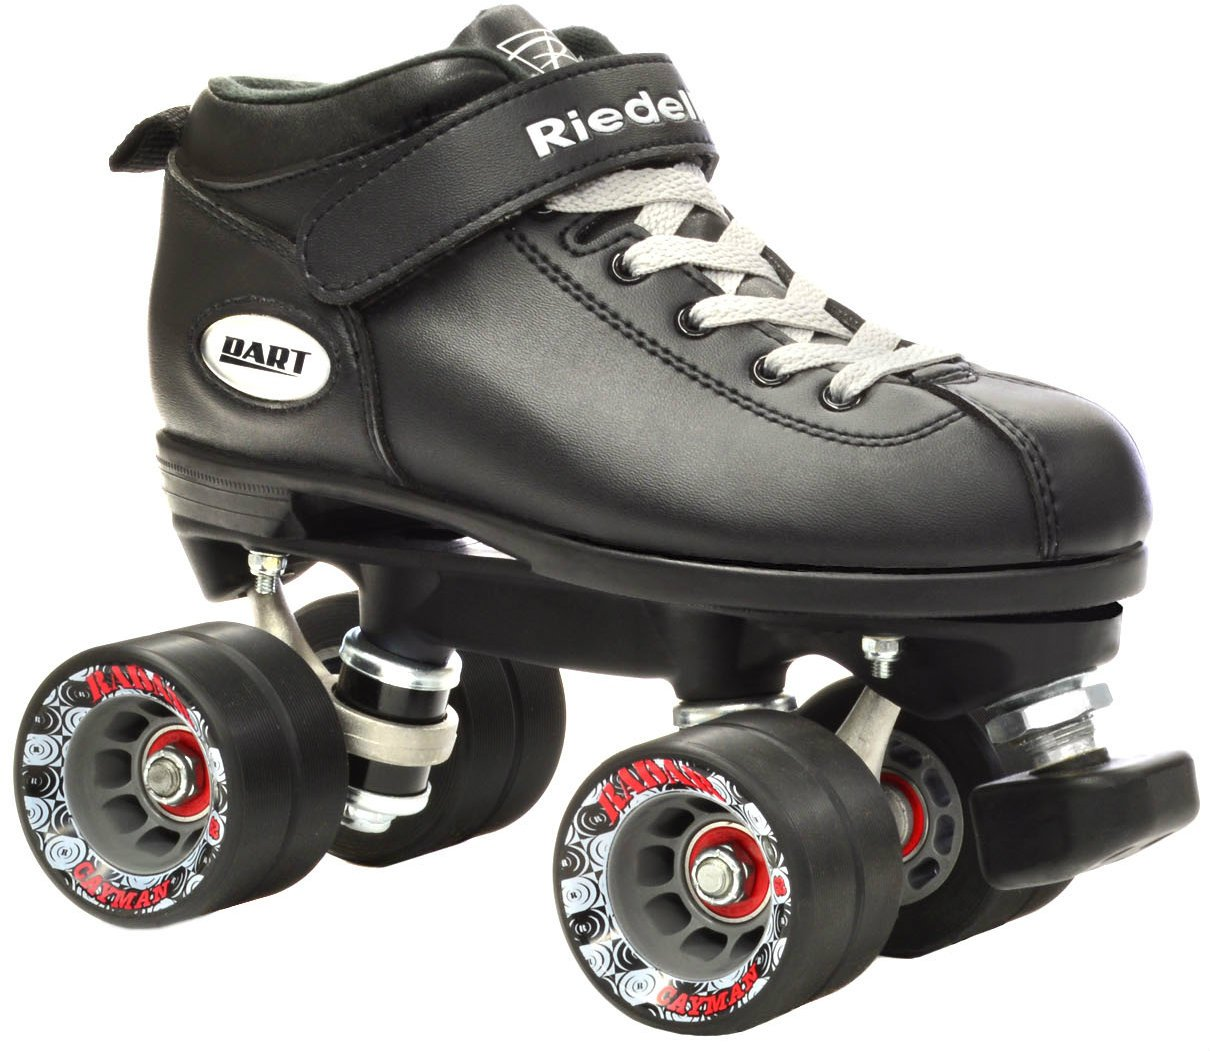 Riedell Dart Vader Quad Roller Derby Speed Skate w/ 2 Pair of Laces (Gray & Black) (Mens 7 / Ladies 8) by Riedell